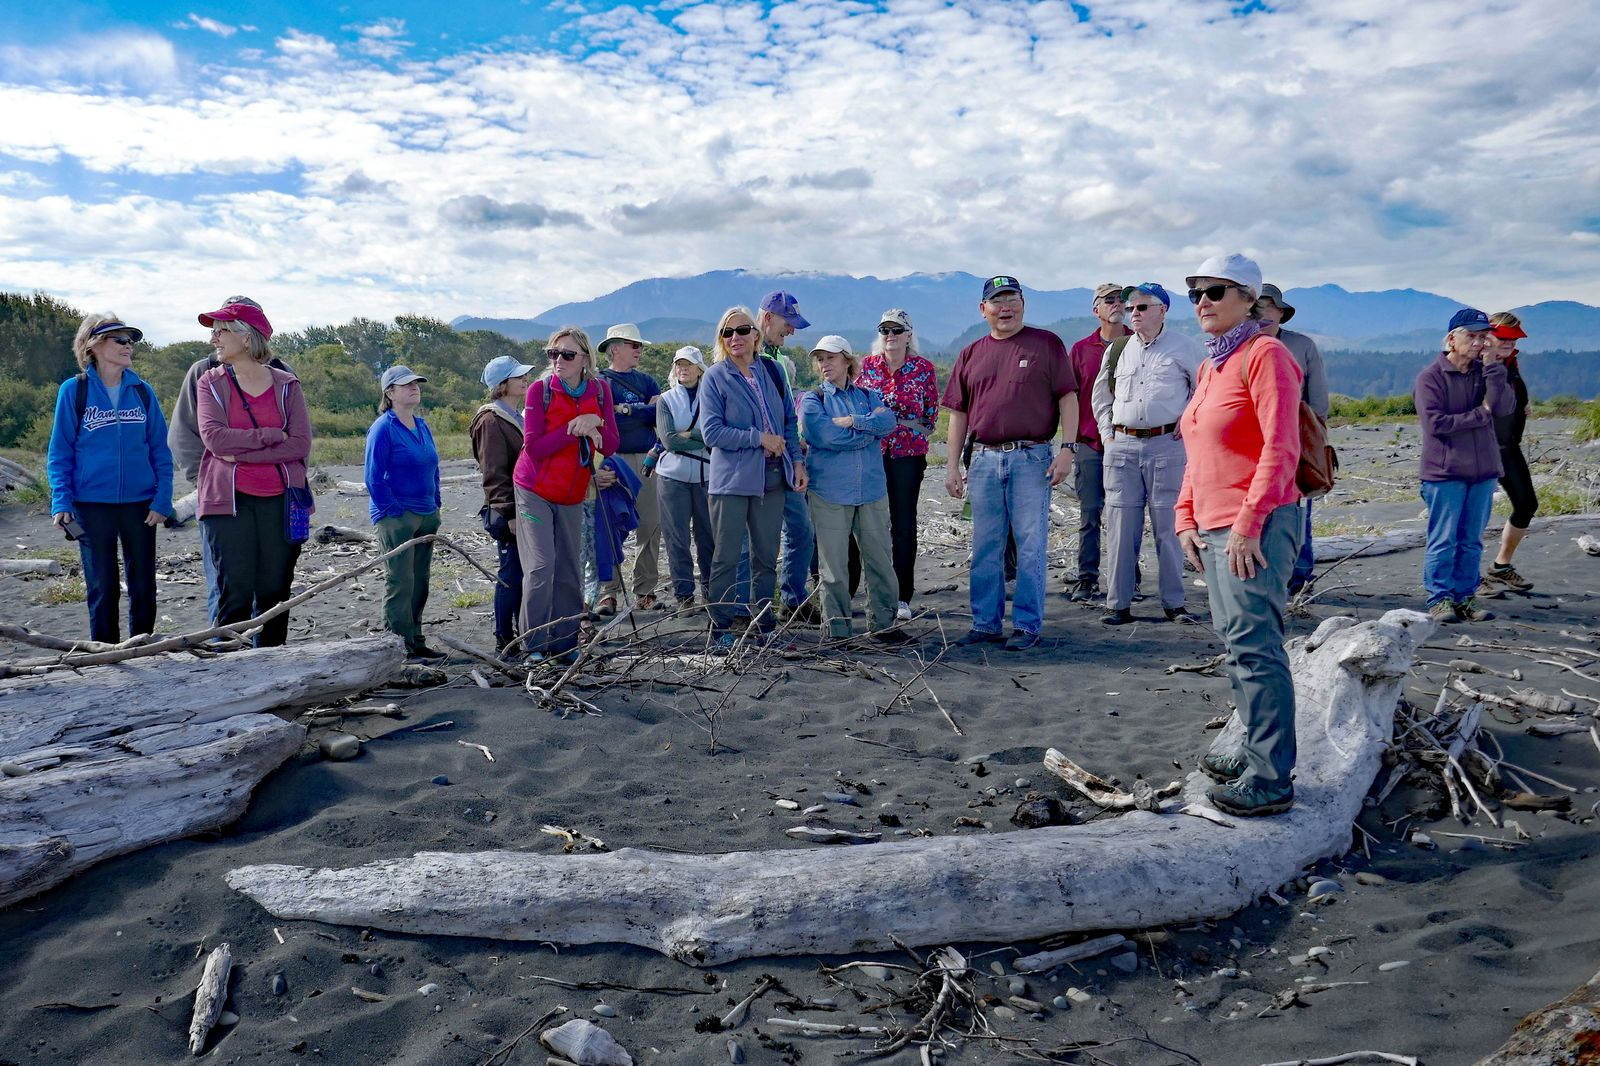 Our guide Robert provides more info on the Elwha River restoration